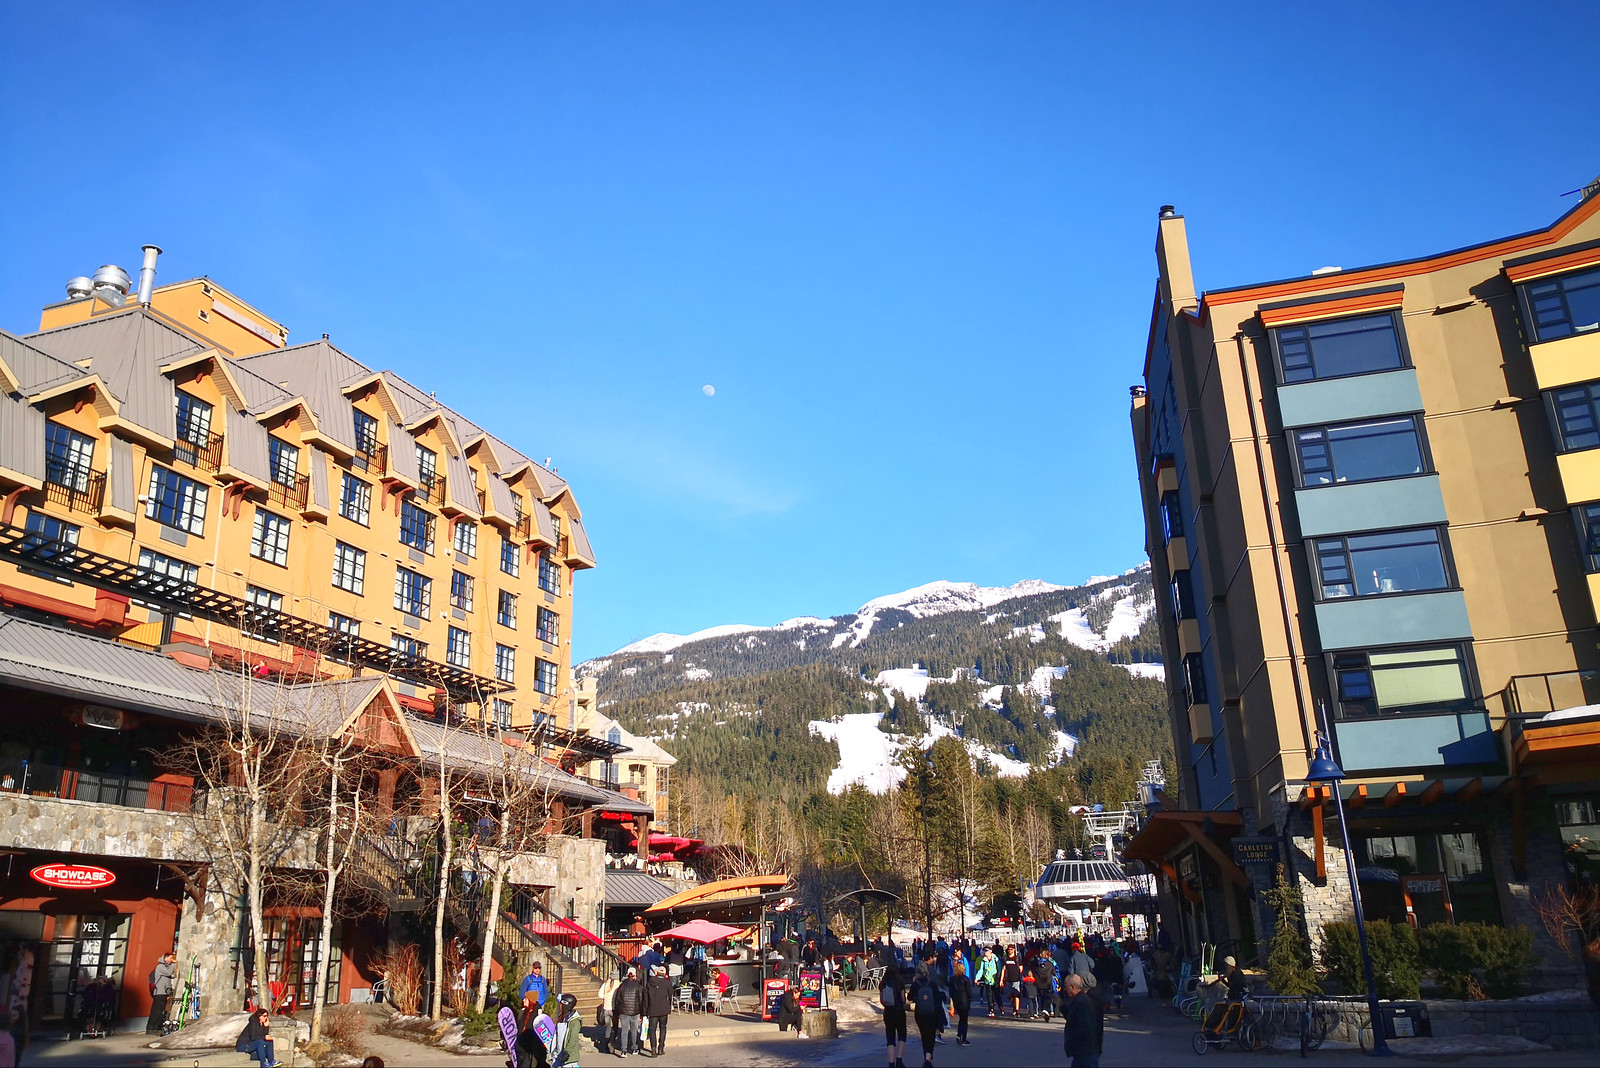 Clear day at Whistler Village